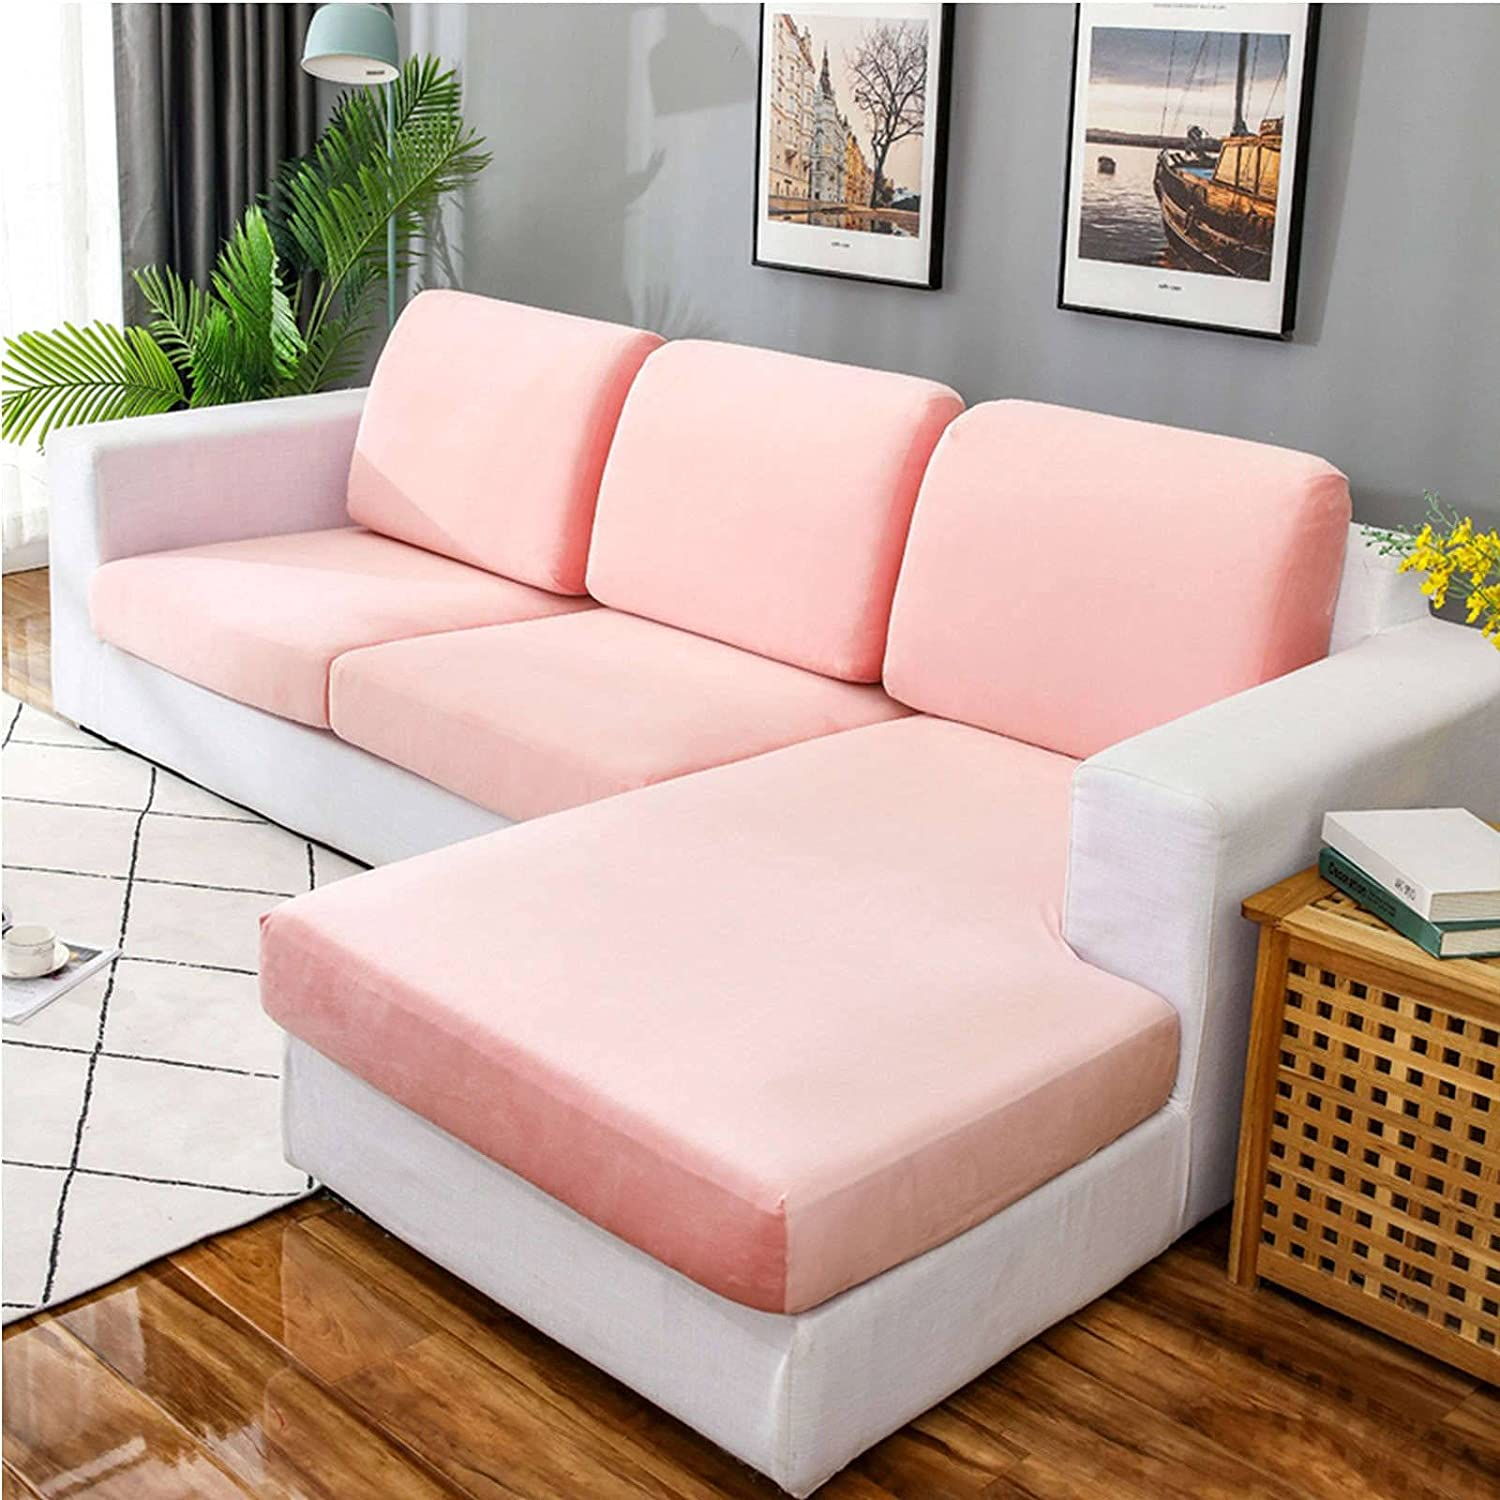 MOSU Velvet Stretch Couch Cushion Cover Sofa Slipcover for L-Shaped Sofa Chaise Longue, 1 2 3 Cushion Couch Sofa Cover Soft Furniture Protector-Pink-XL Chaise Longue